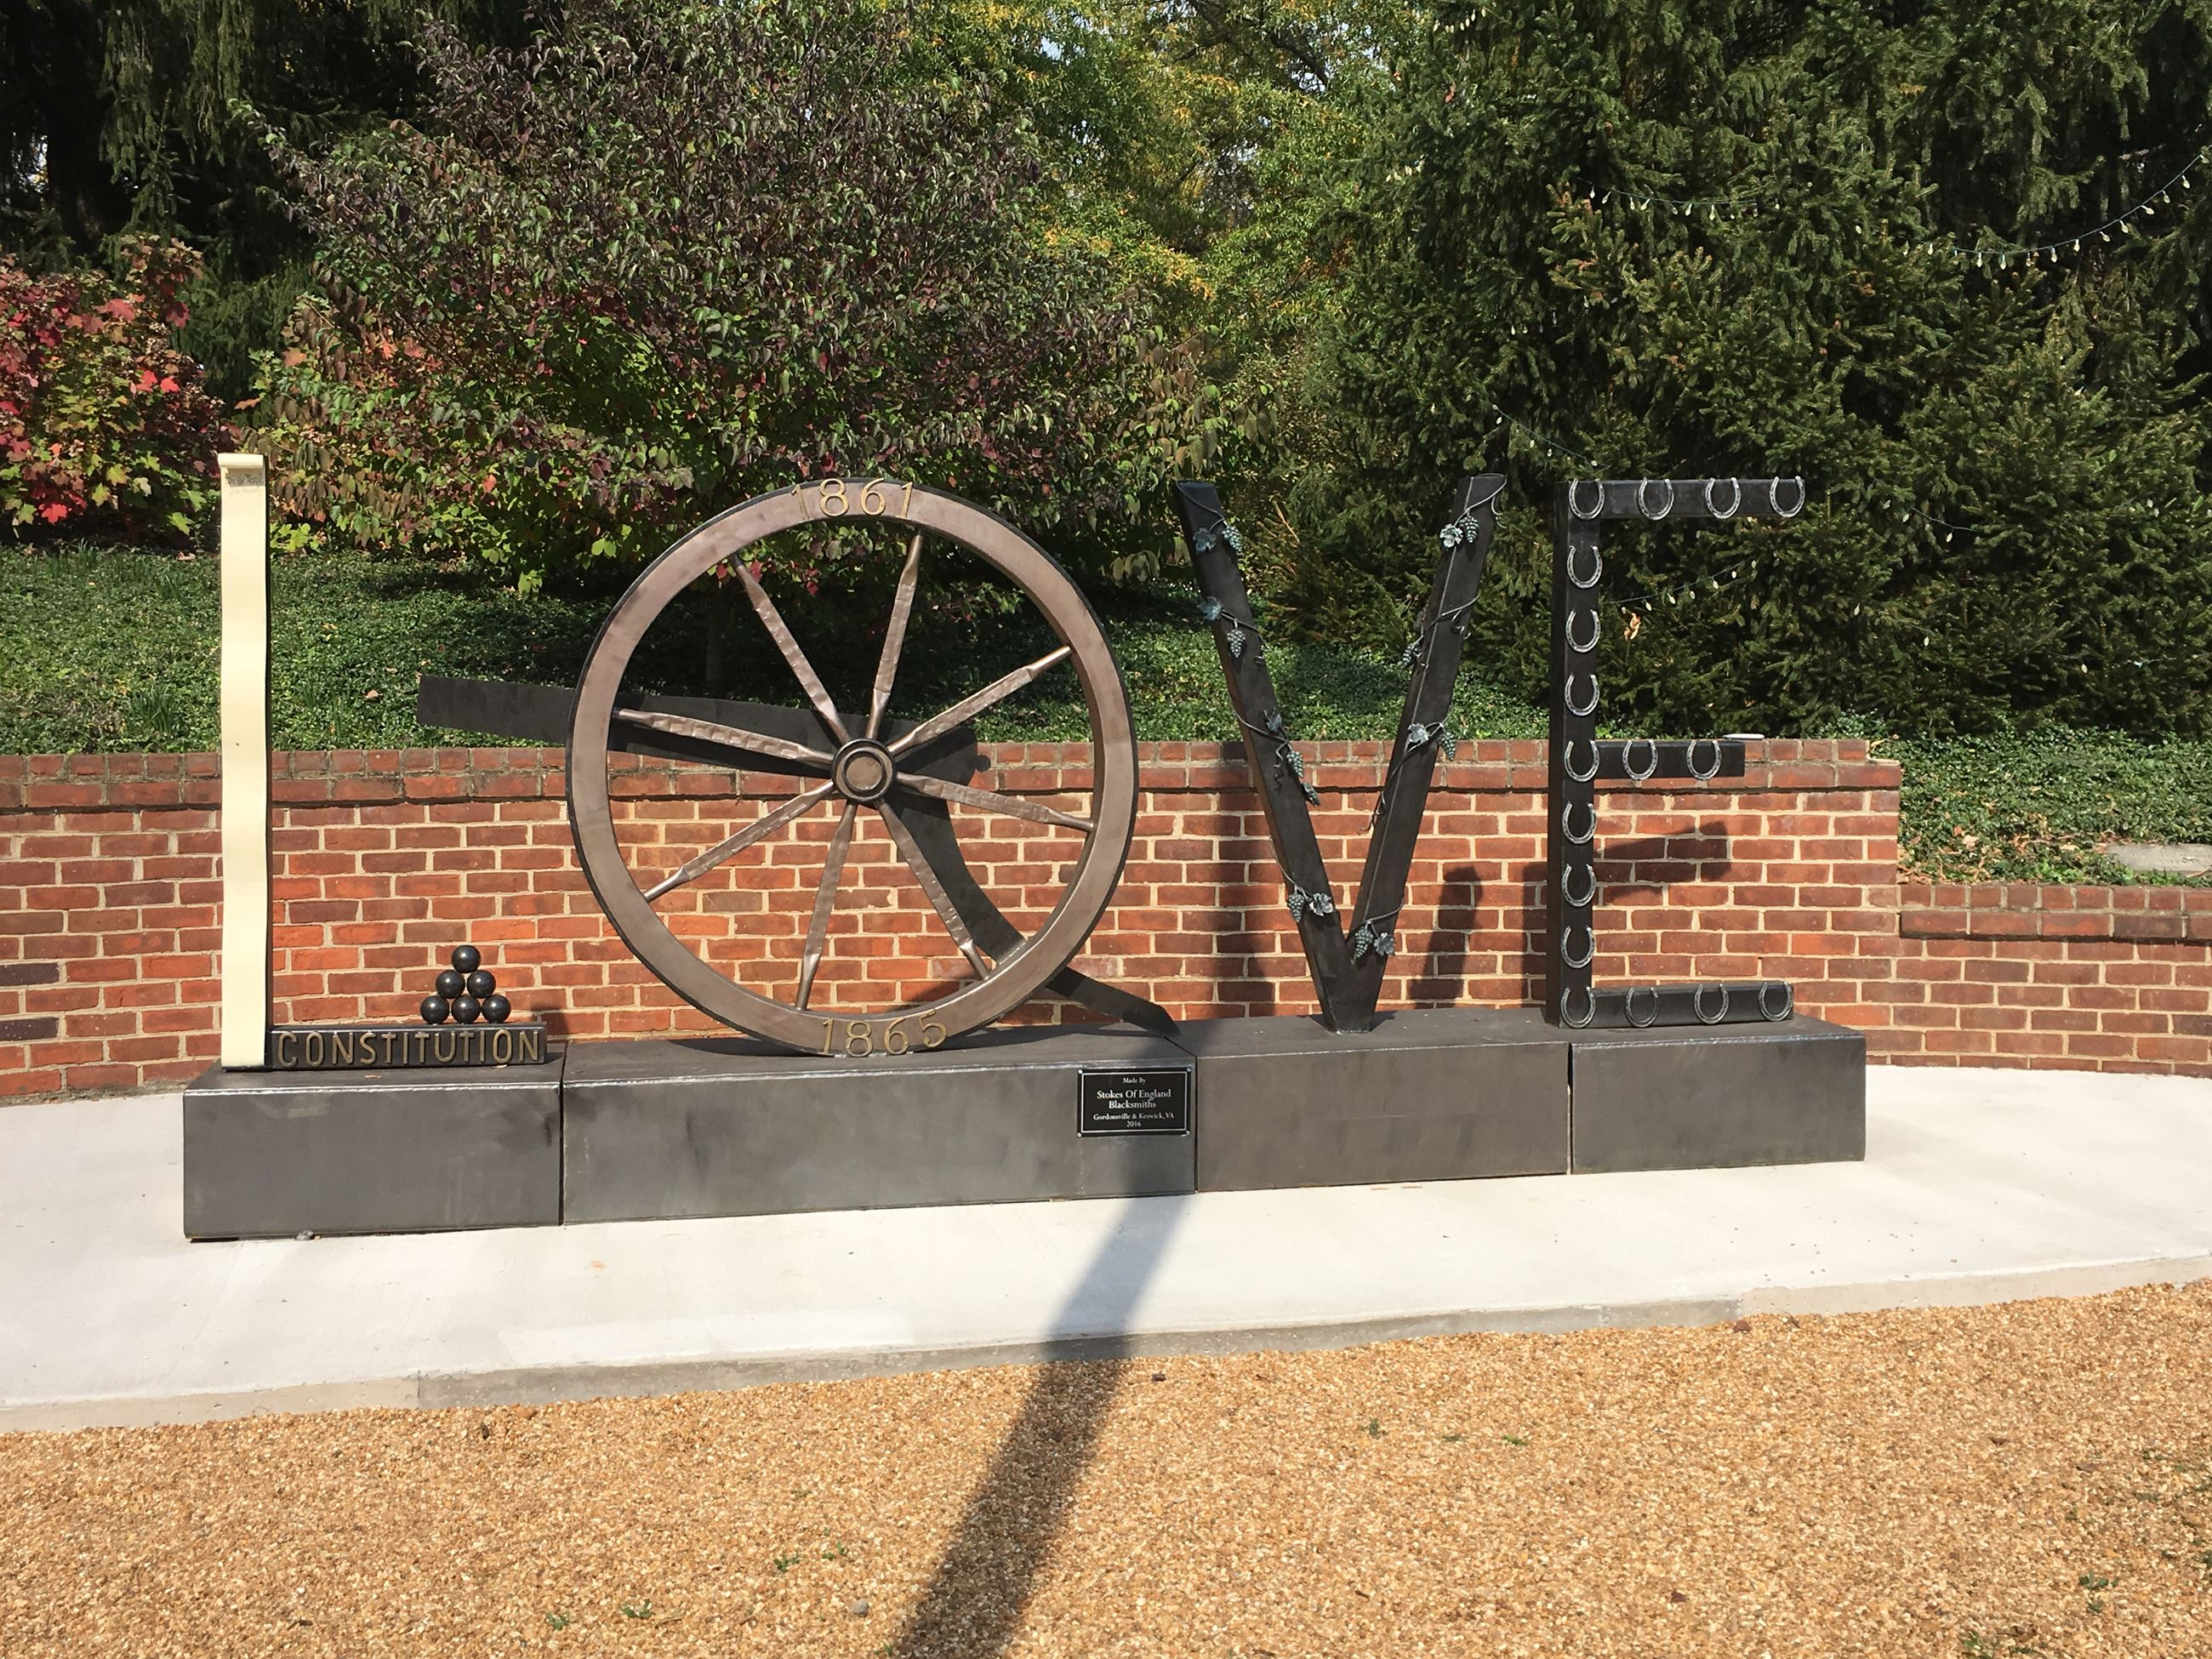 New LOVEwork in Taylor Park